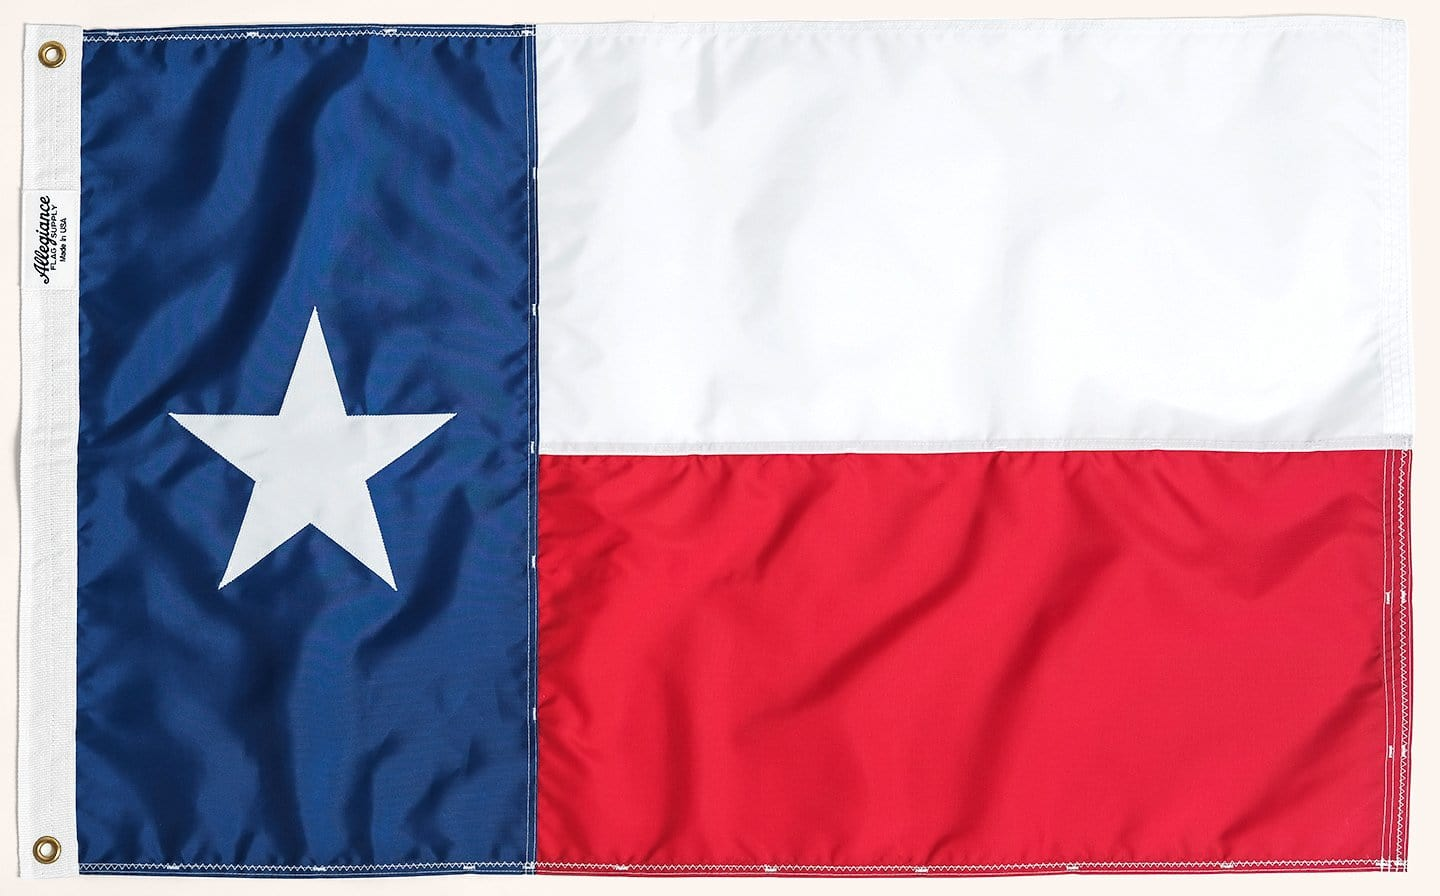 Texas State Flag, Allegiance Flag Supply, Heirloom Quality Flags